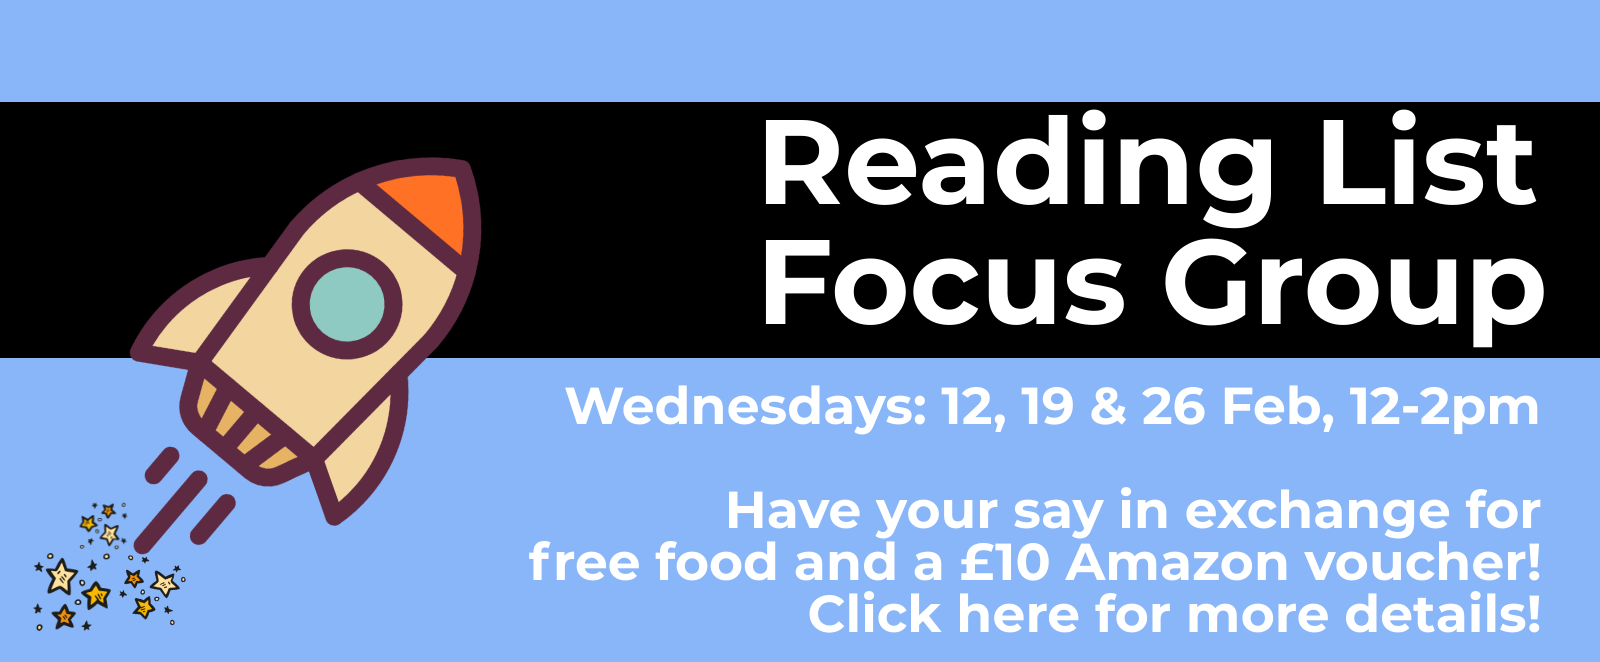 Reading List Focus Group. Click for more information